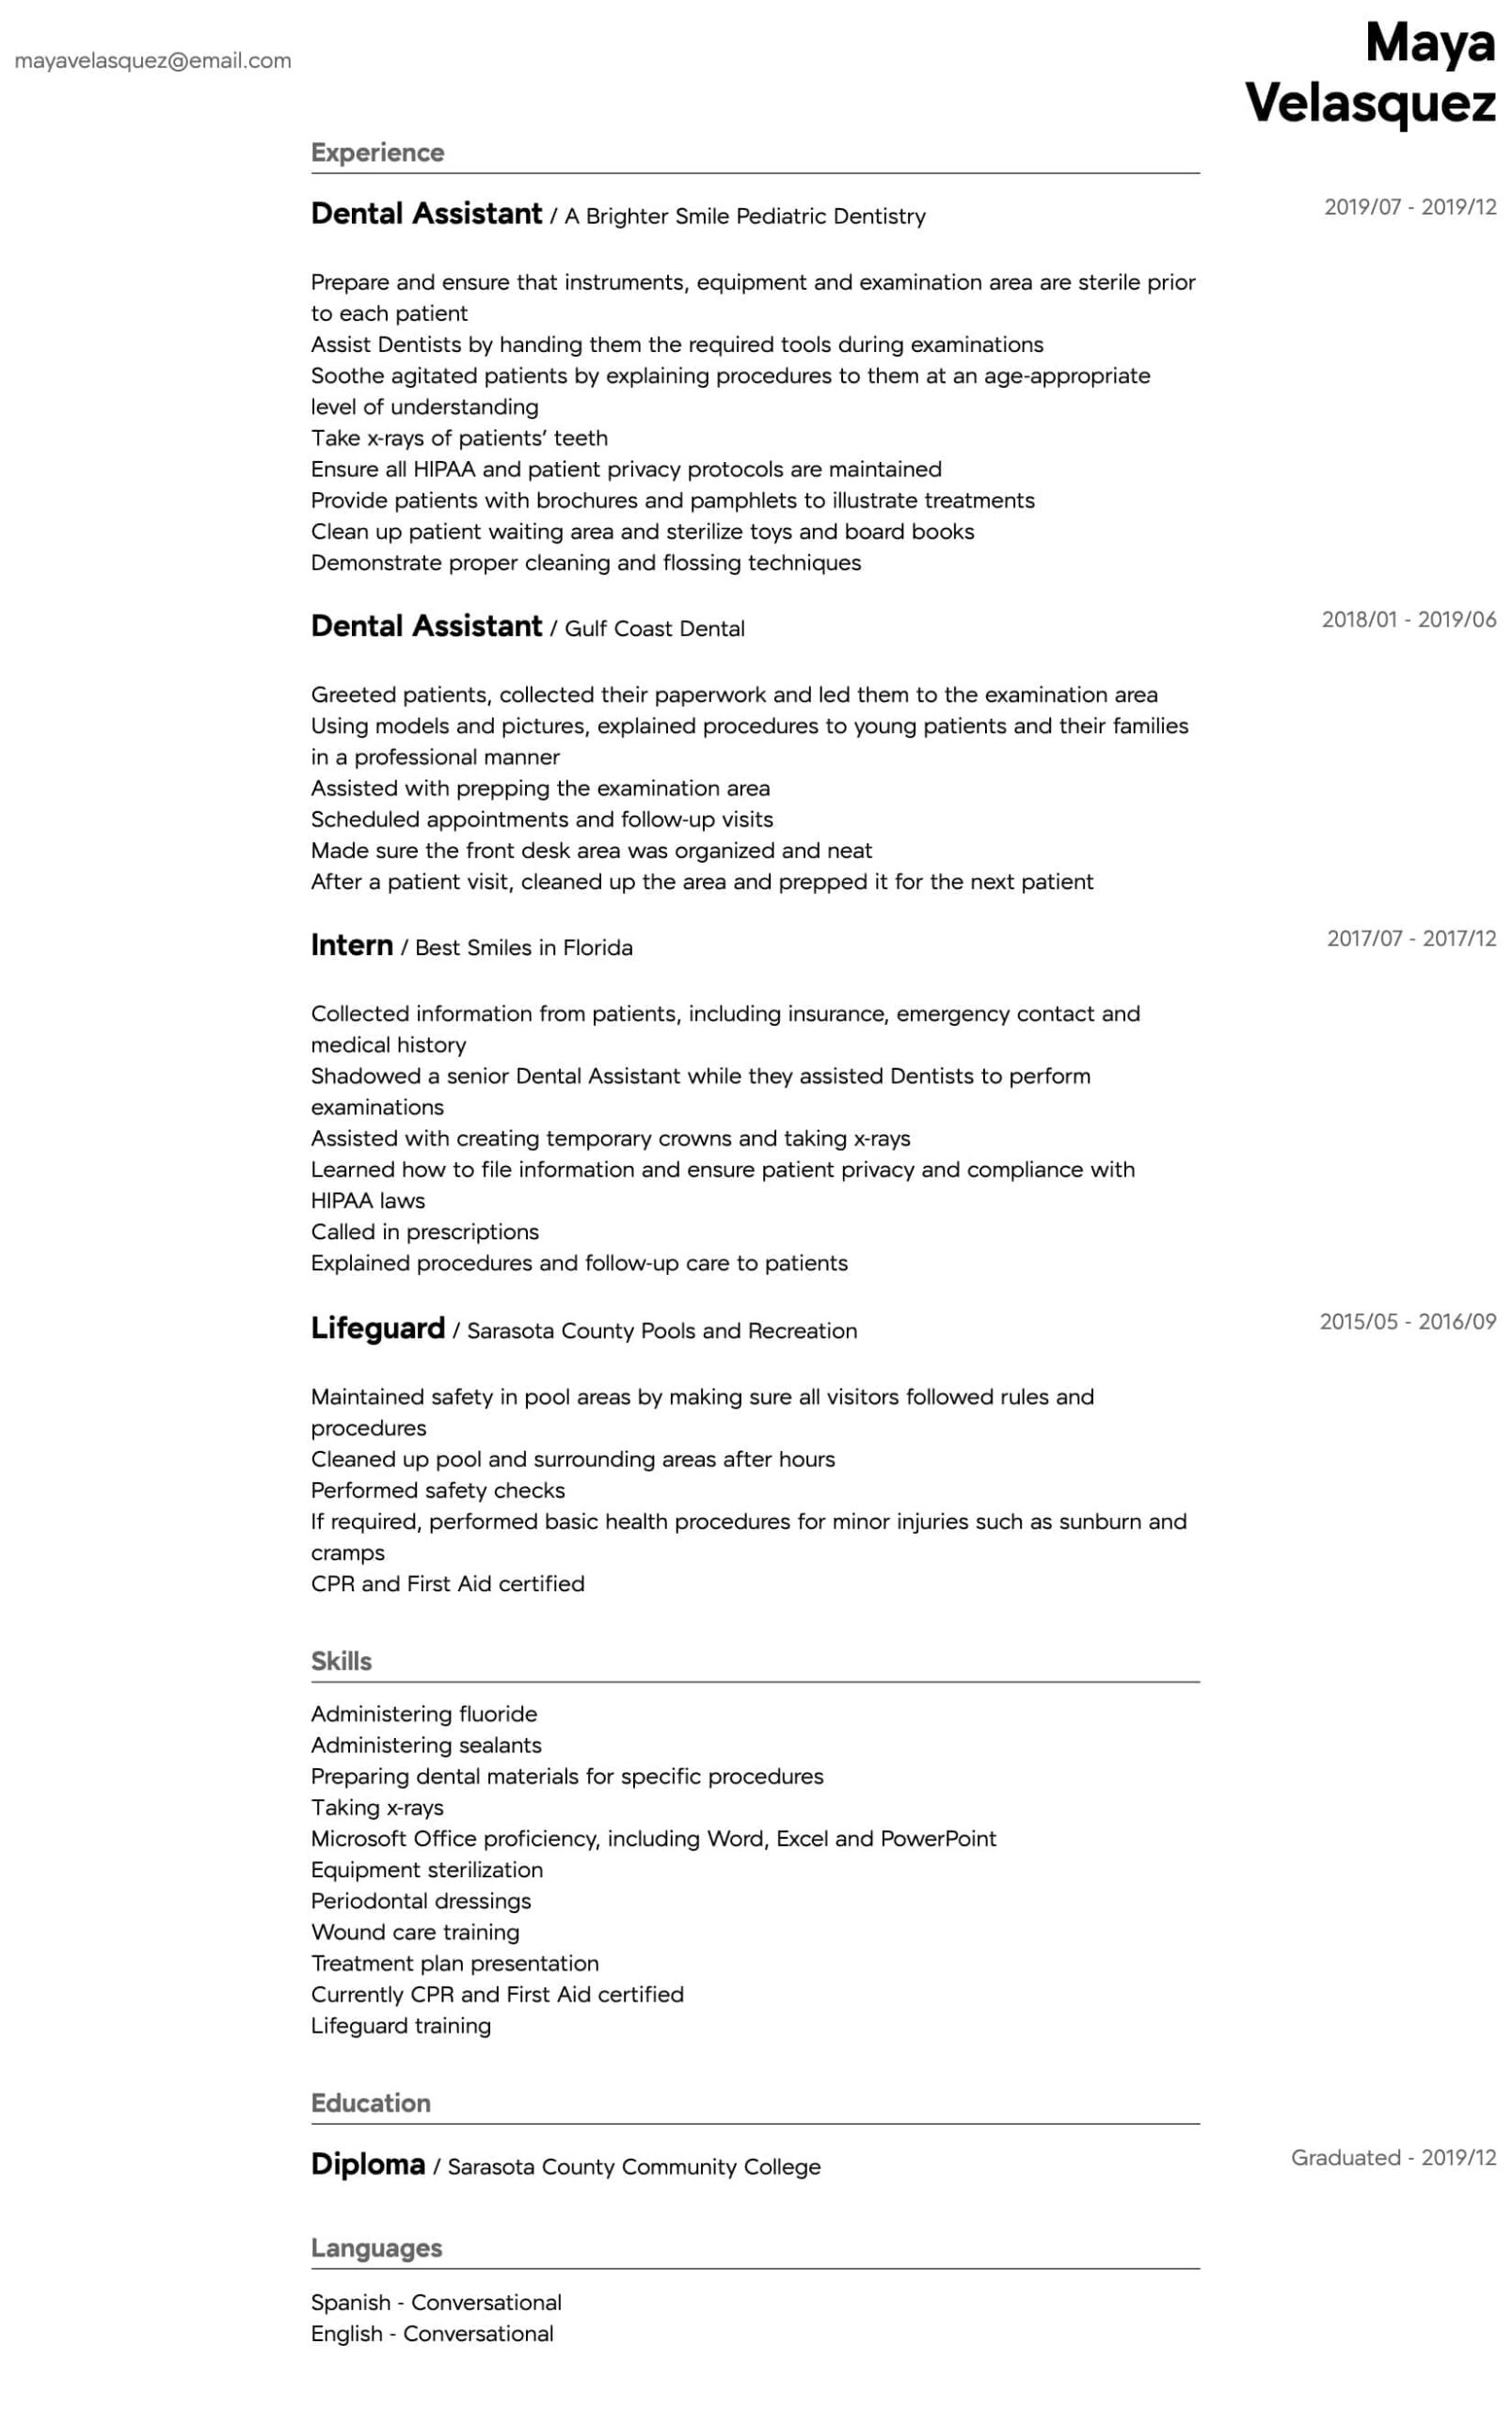 dental assistant resume samples all experience levels skills and abilities for Resume Skills And Abilities For Dental Assistant Resume